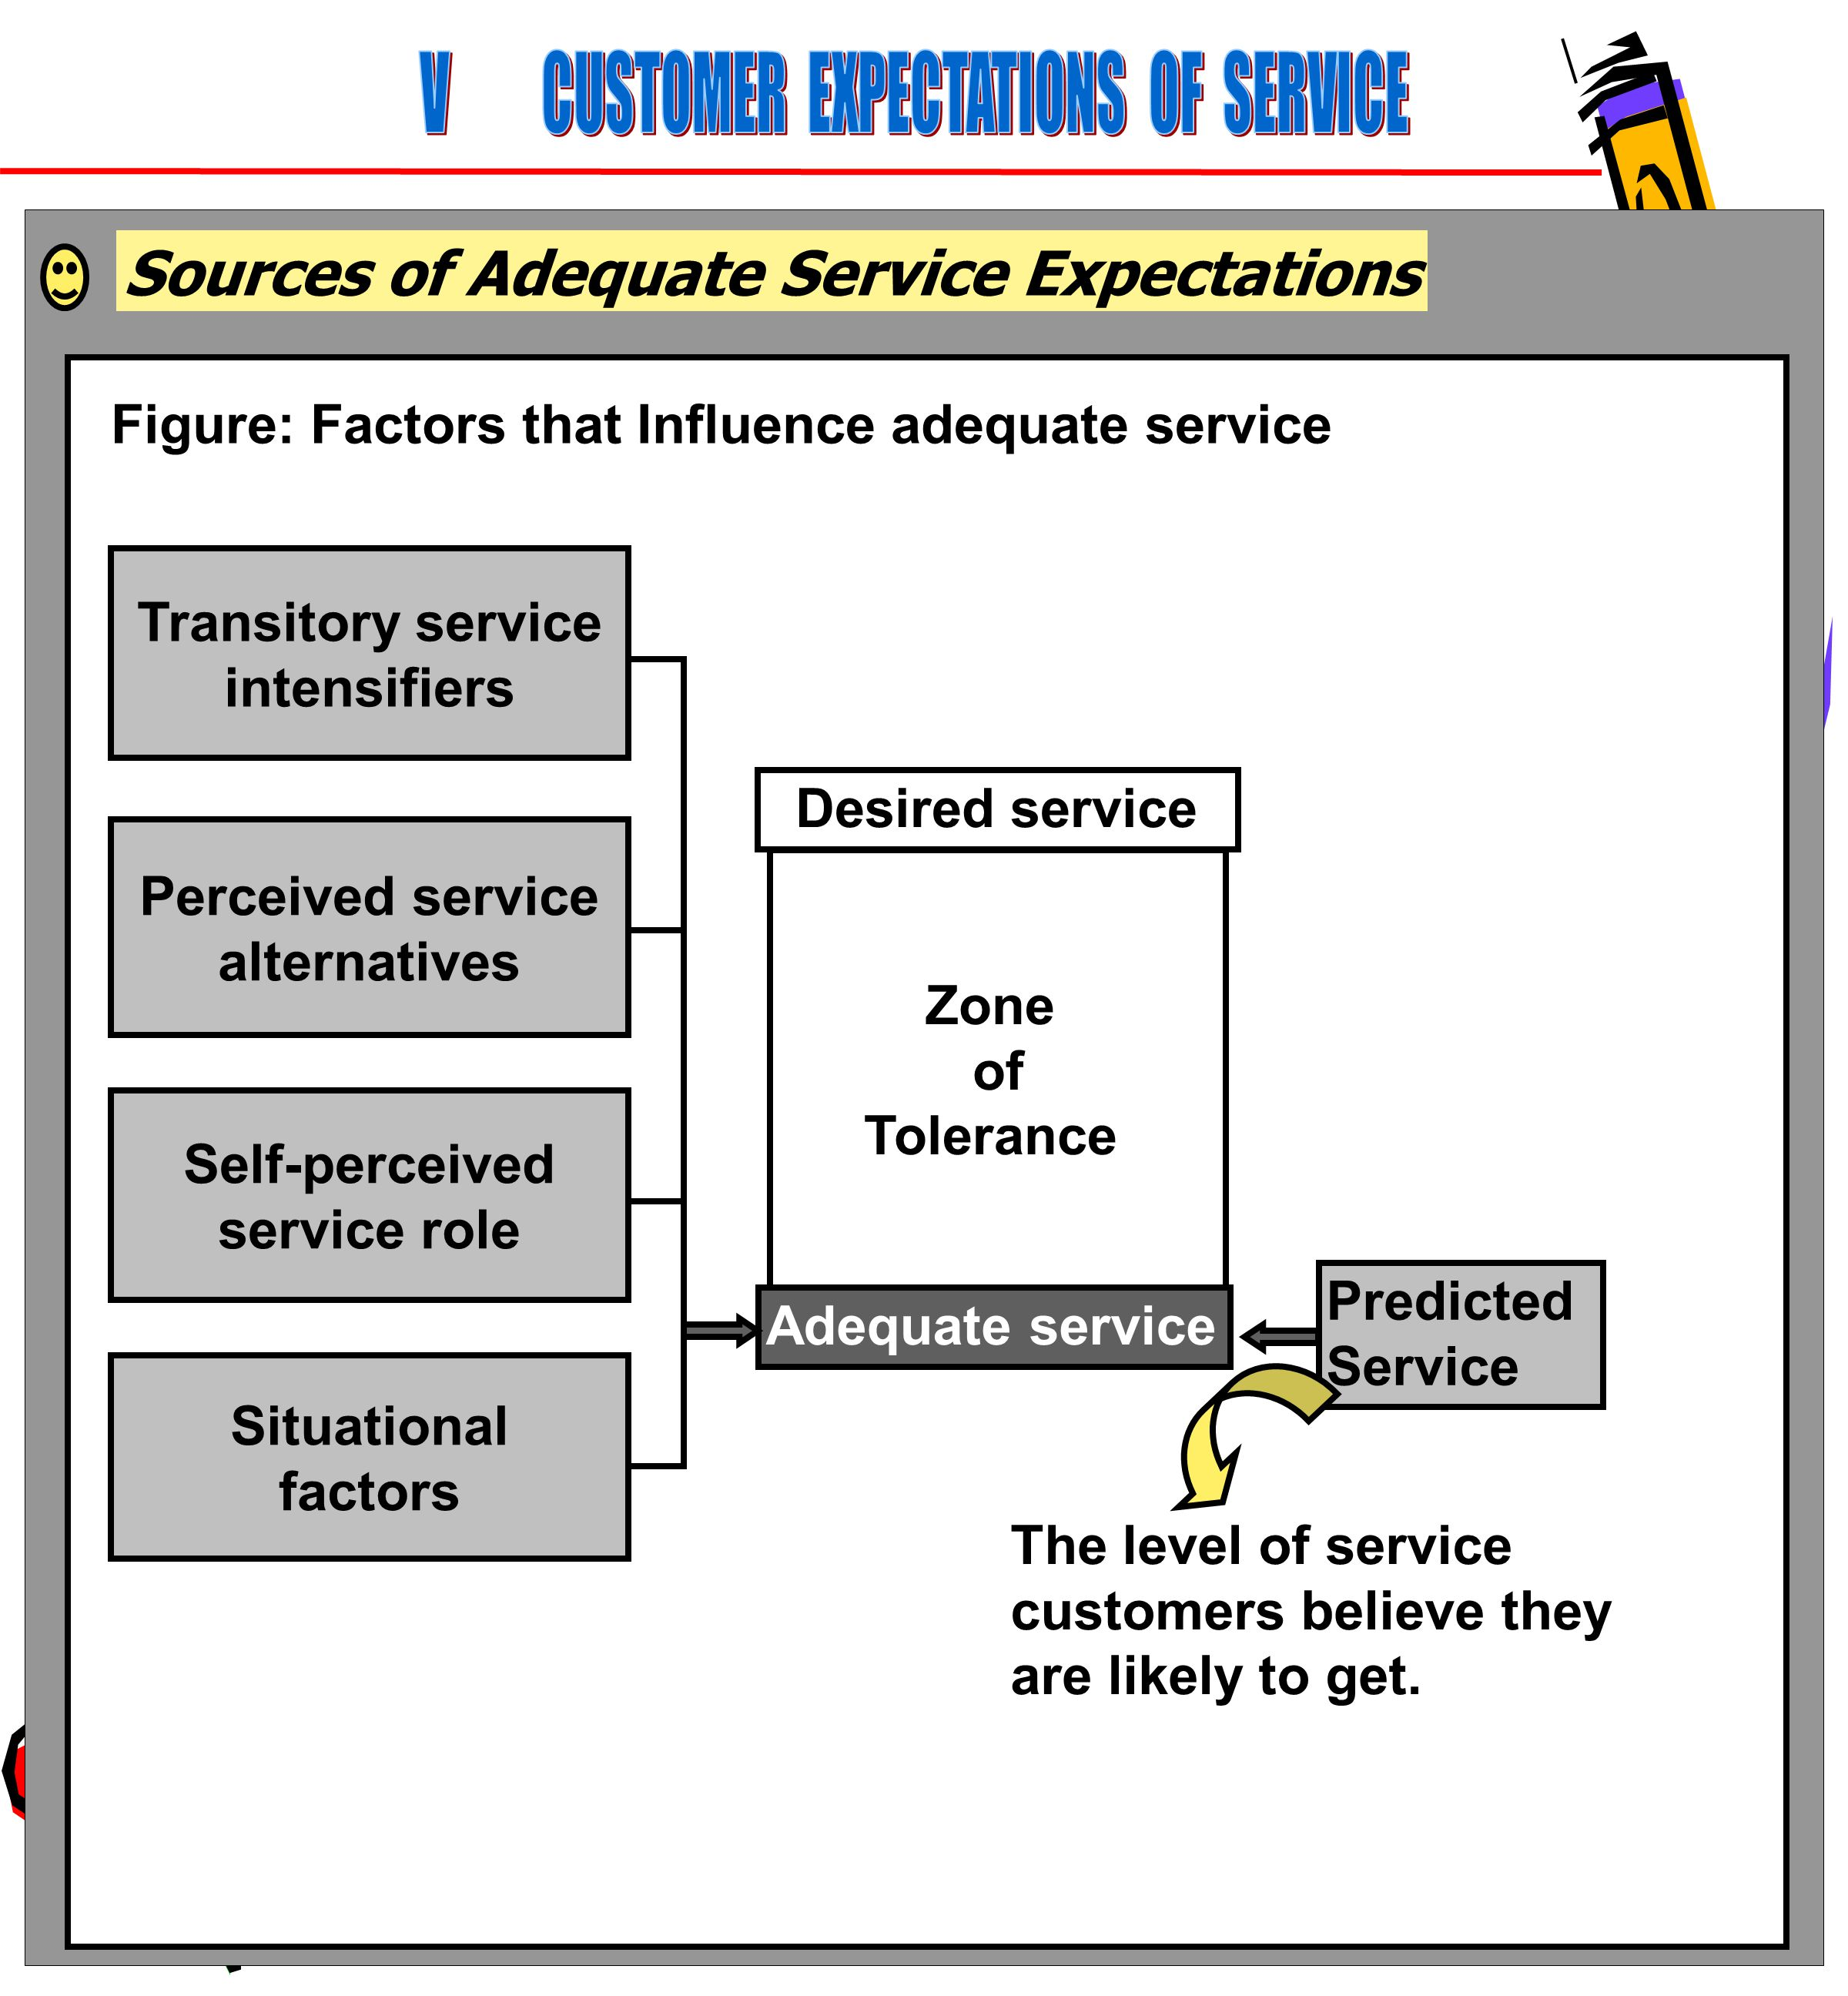 62 Sources of Adequate Service Expectations Figure: Factors that Influence adequate service Transitory service intensifiers Perceived service alternat